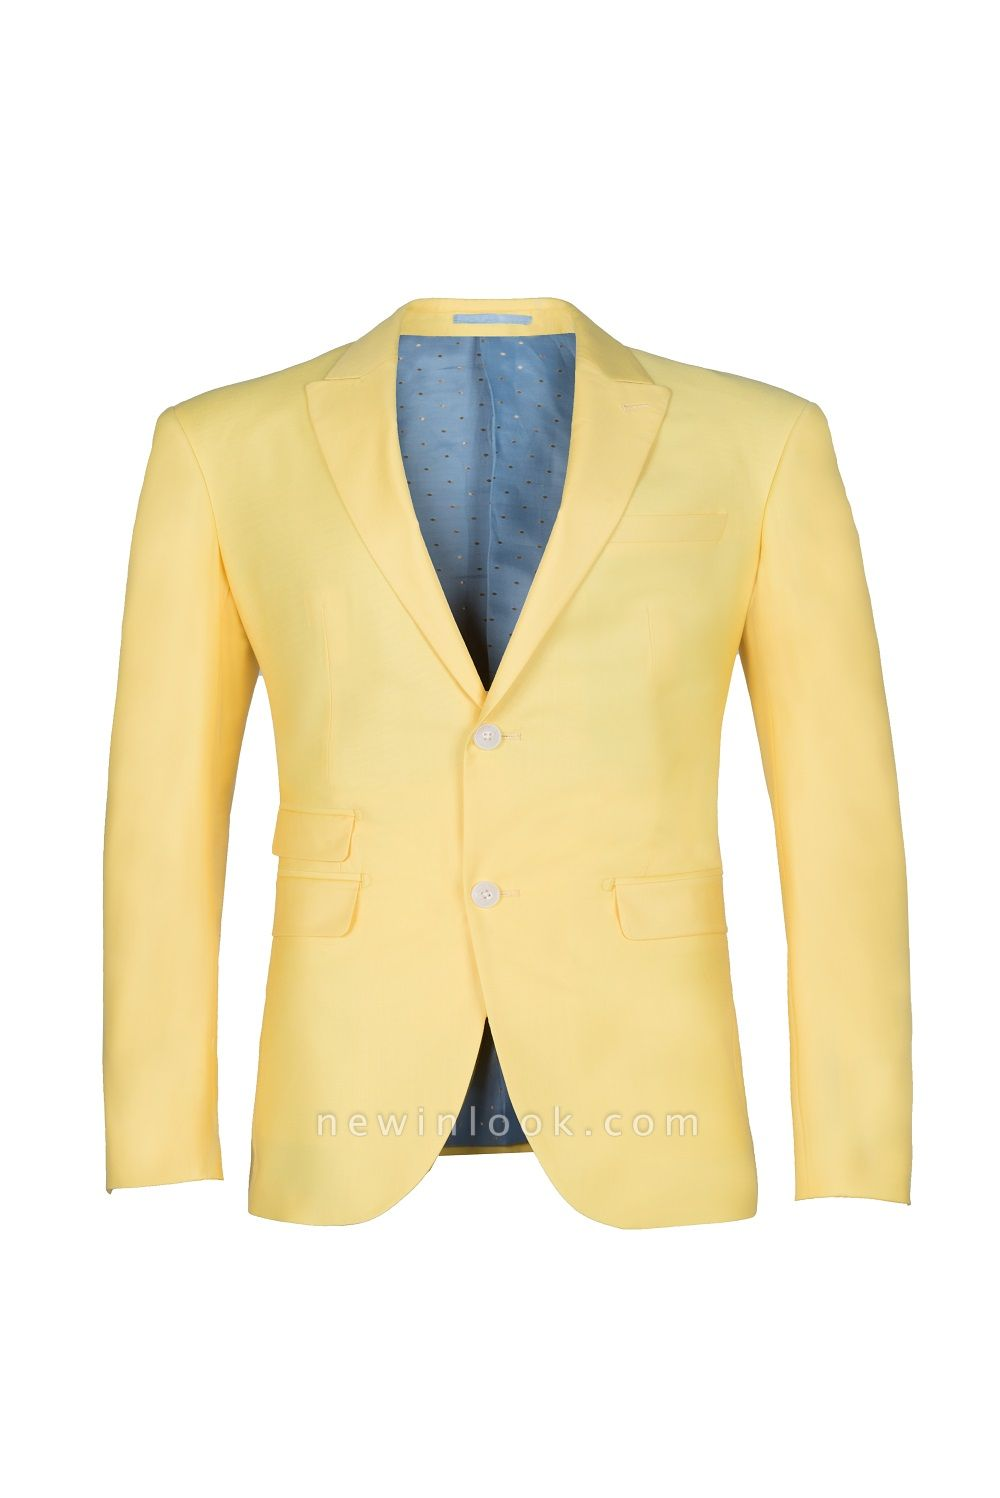 Noched Lapel Two Button Single Breasted Daffodil Chambelanes Tuxedos Slim Fit